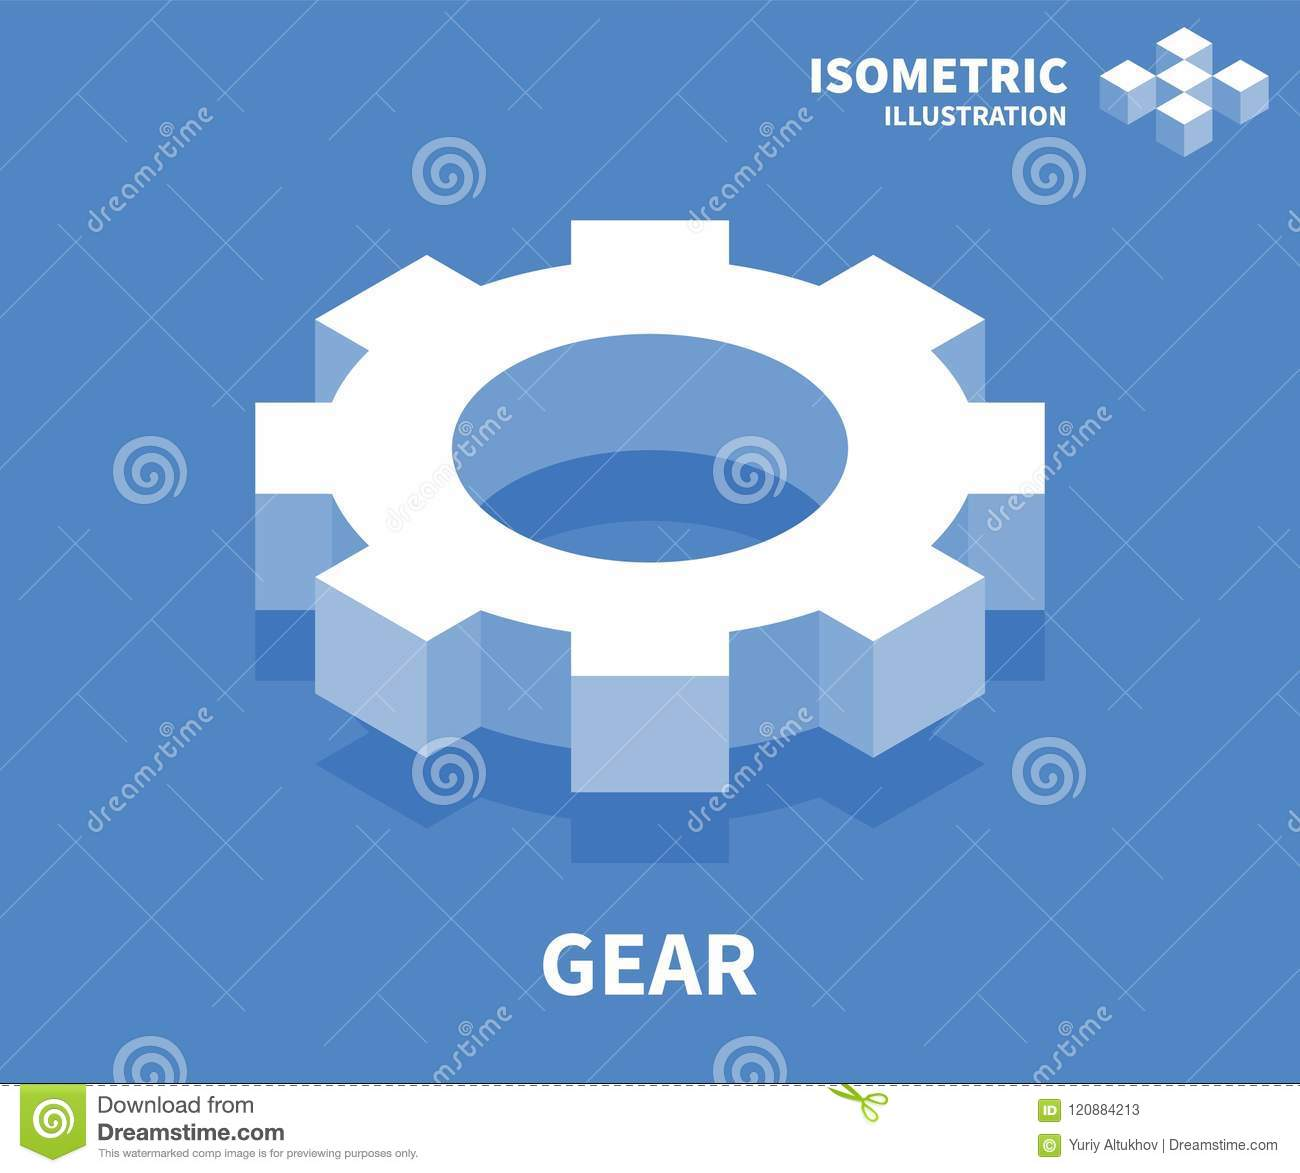 Gear icon isometric template for web design in flat 3d style isometric template for web design in flat 3d style vector illustration maxwellsz